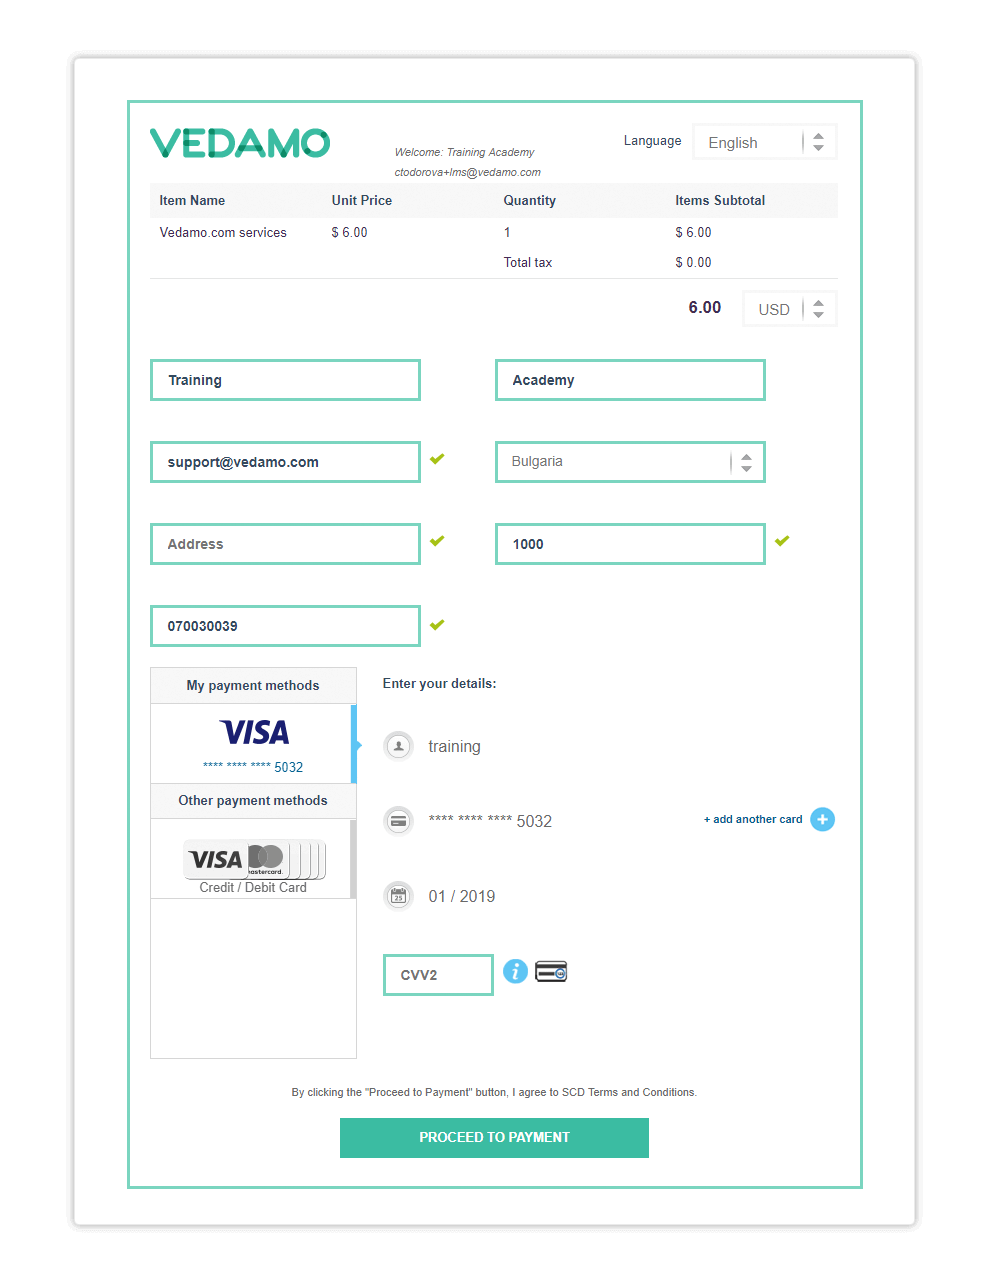 Once ready, click on Proceed to payment to finish your payment